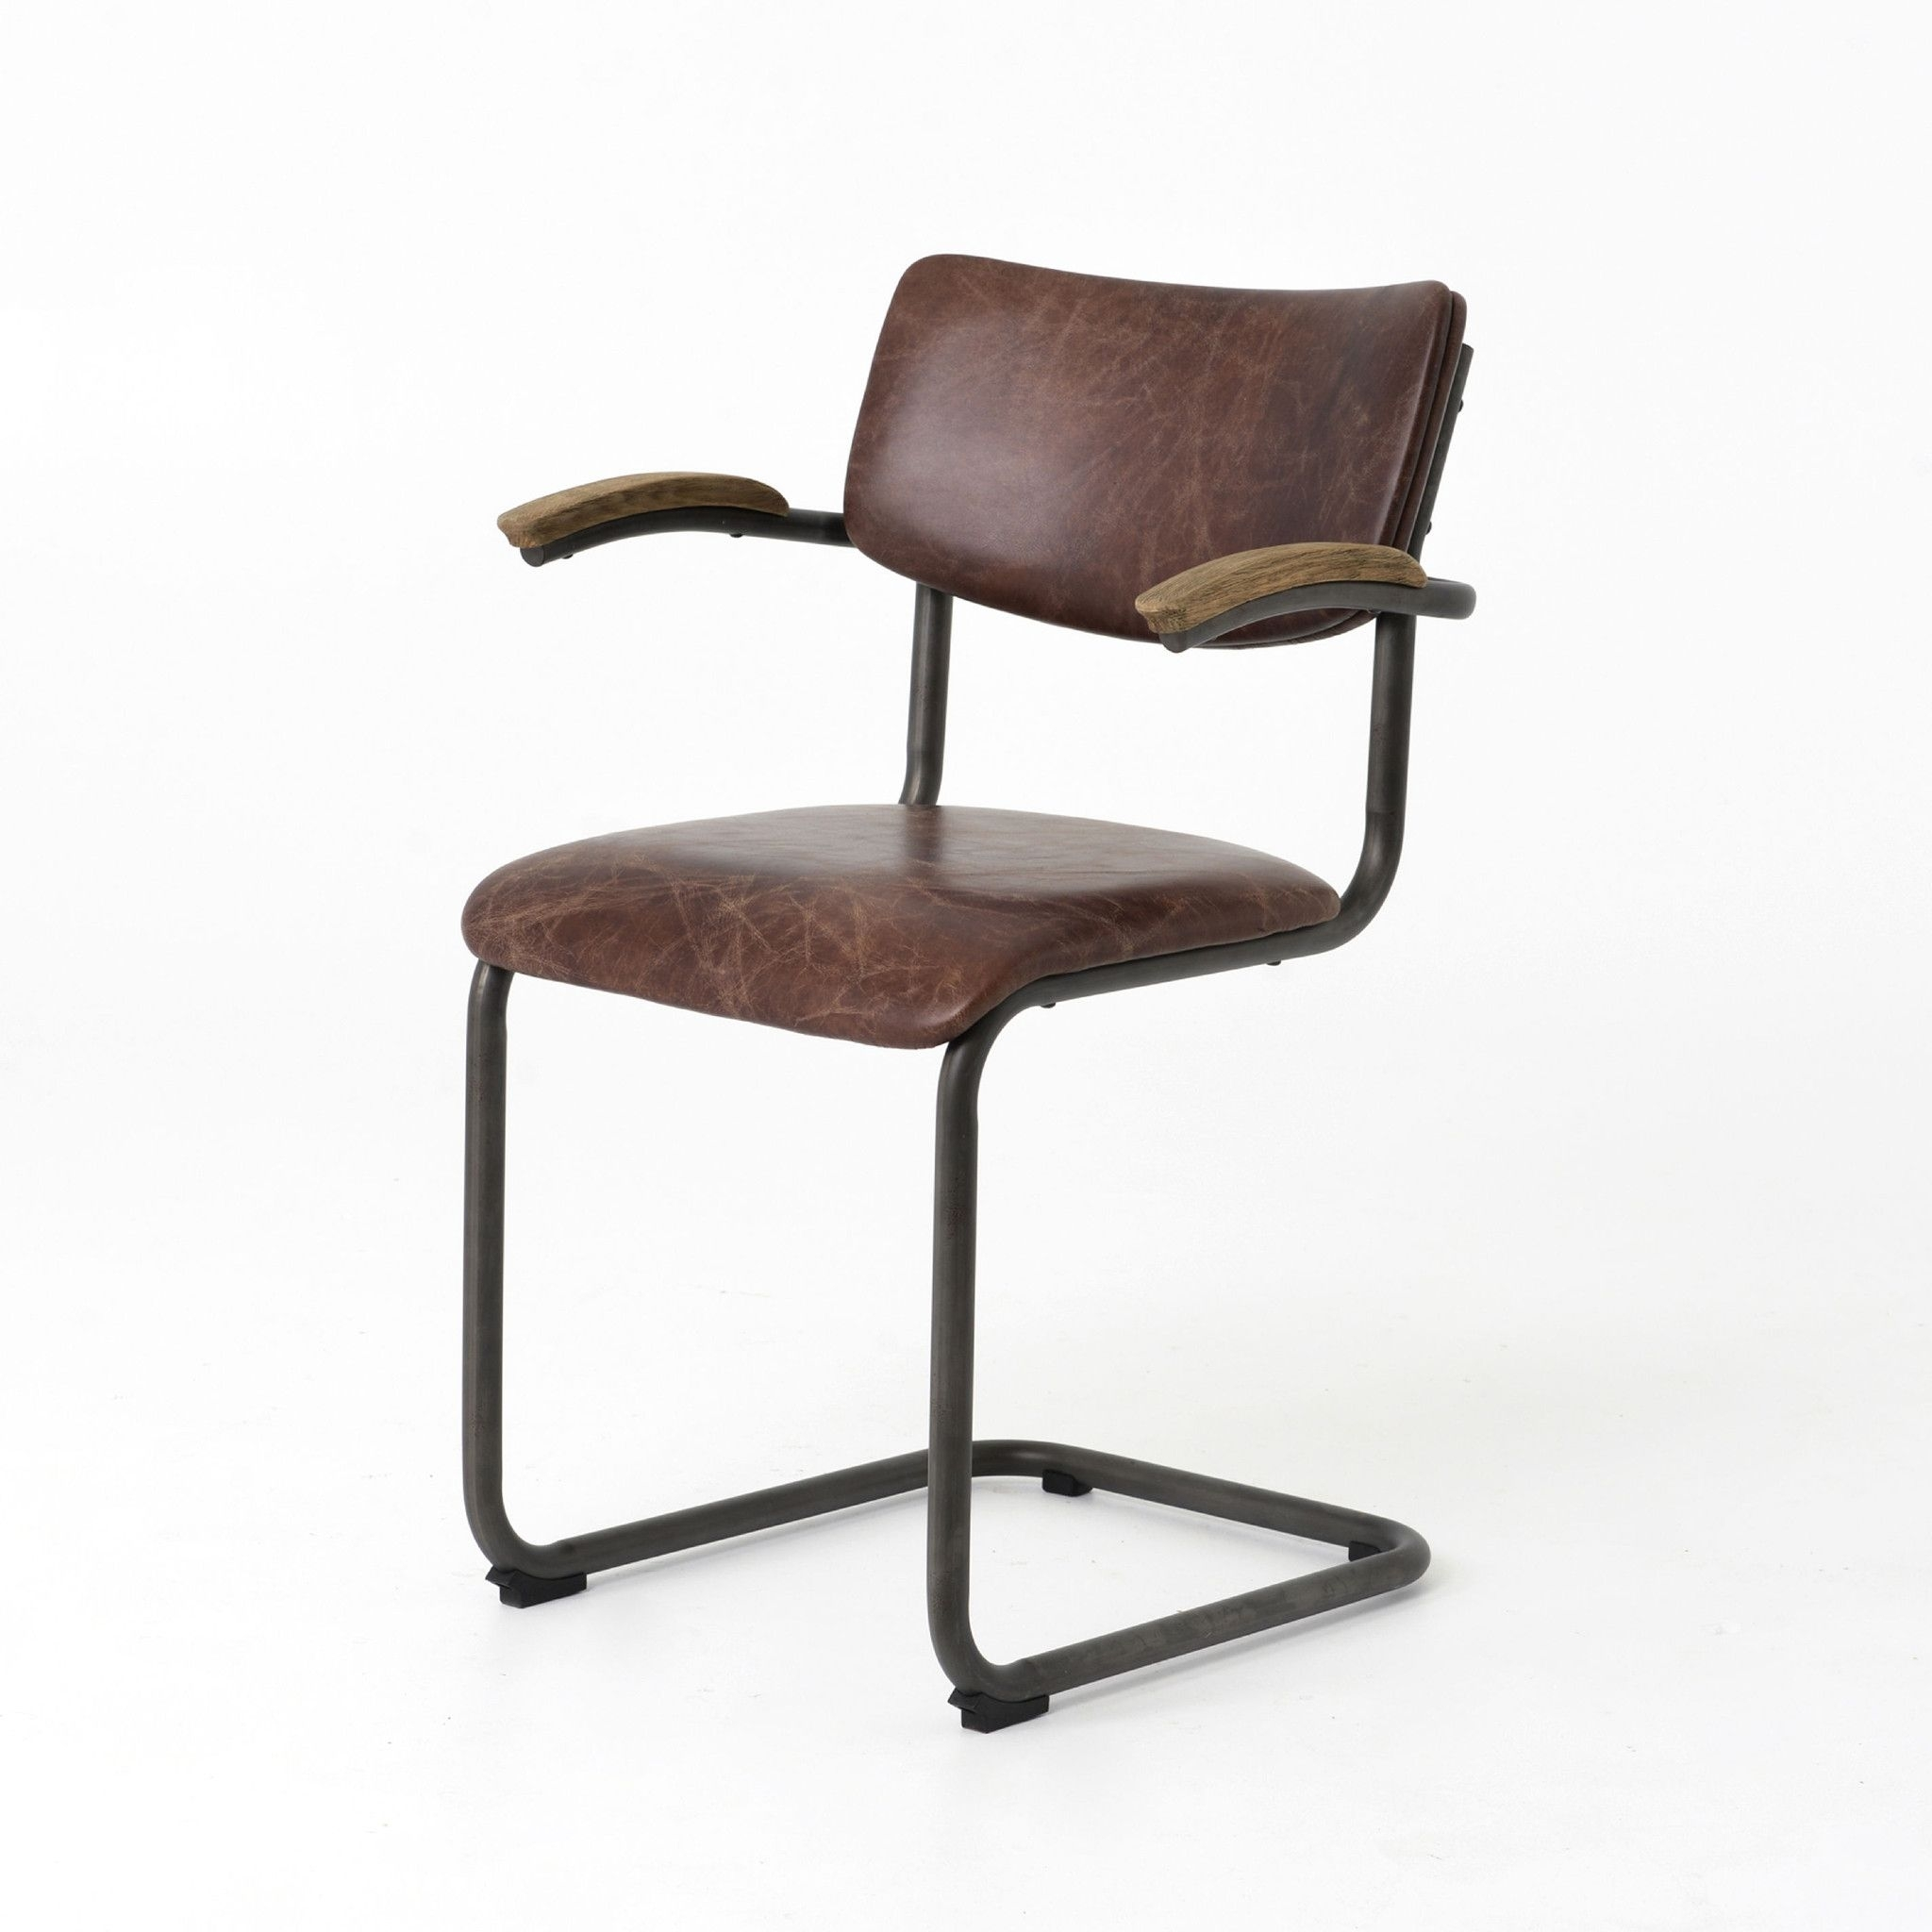 Irondale Quinn Dining Chair Havana/waxed Black/drifted Oak Pertaining To Best And Newest Magnolia Home Emery Ivory Burlap Side Chairs (#4 of 20)